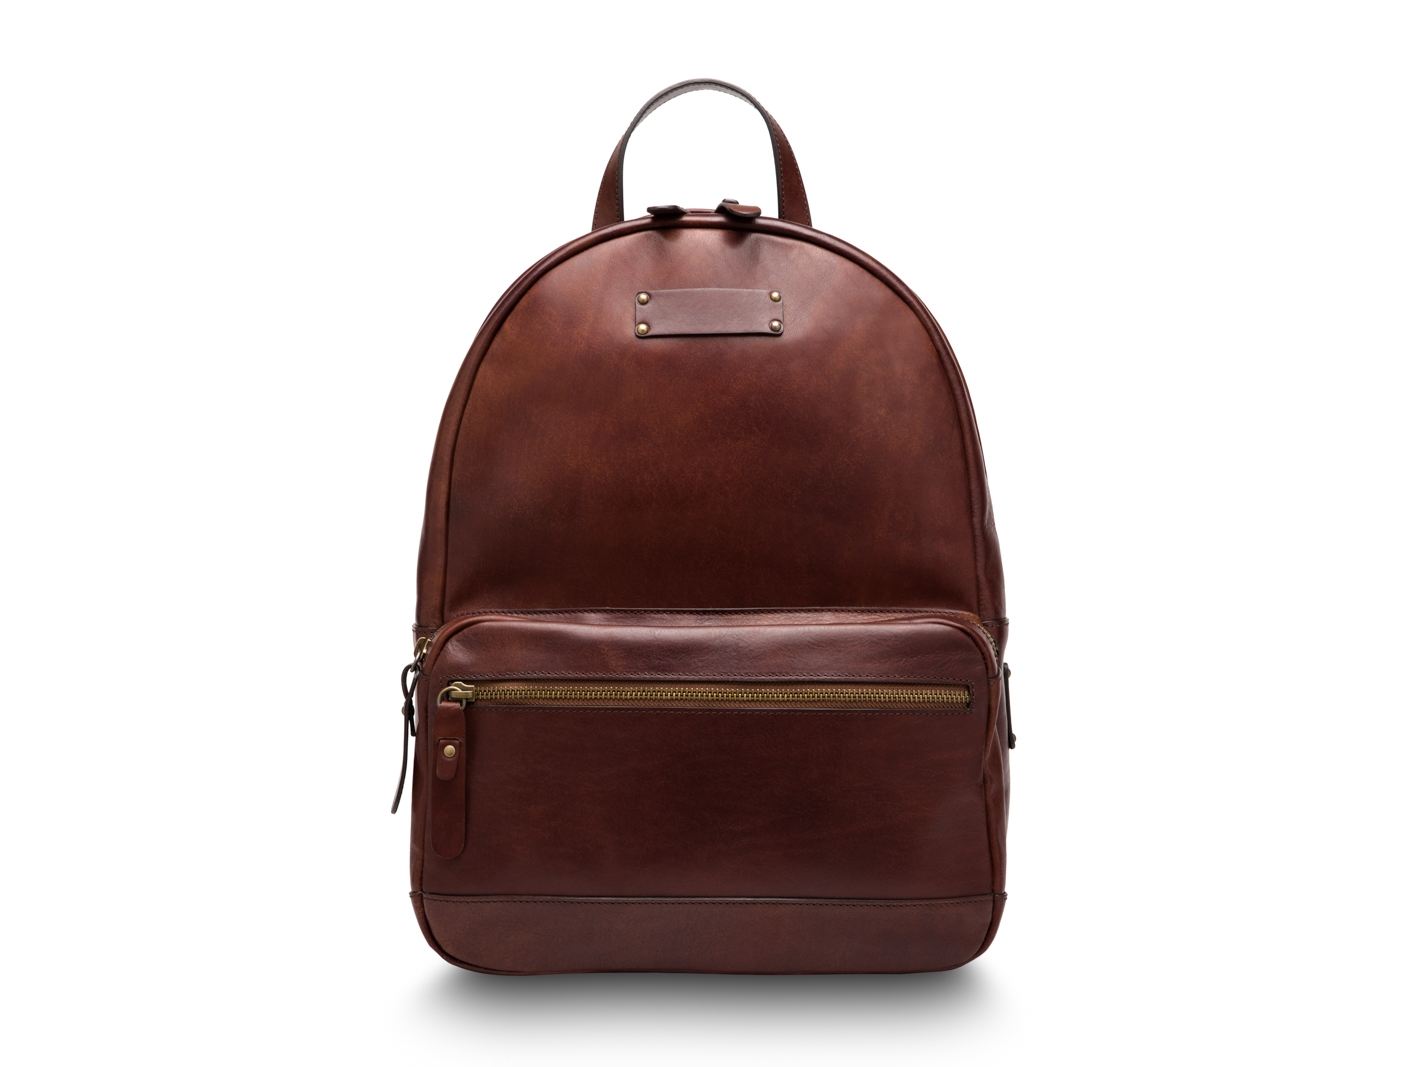 Crosby Backpack-218 Dark Brown - 218 Dark Brown